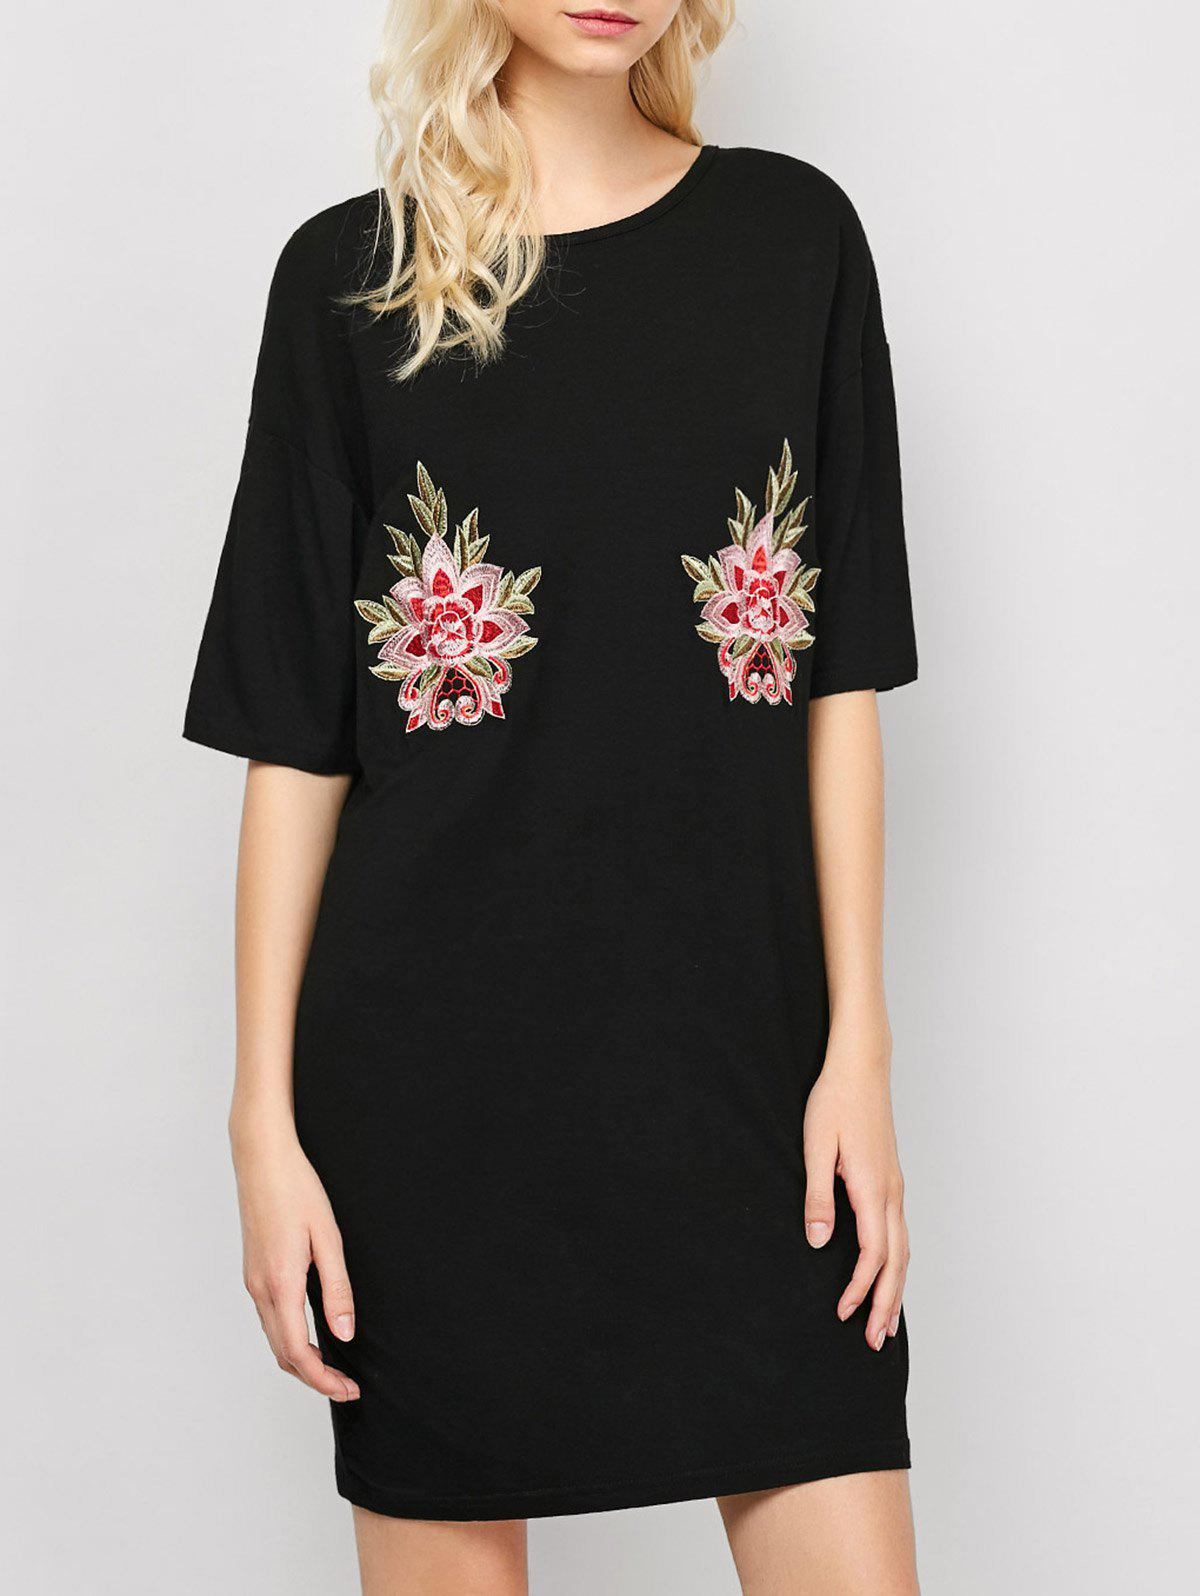 Embroidered Casual Shift Summer T-Shirt Dress - BLACK S